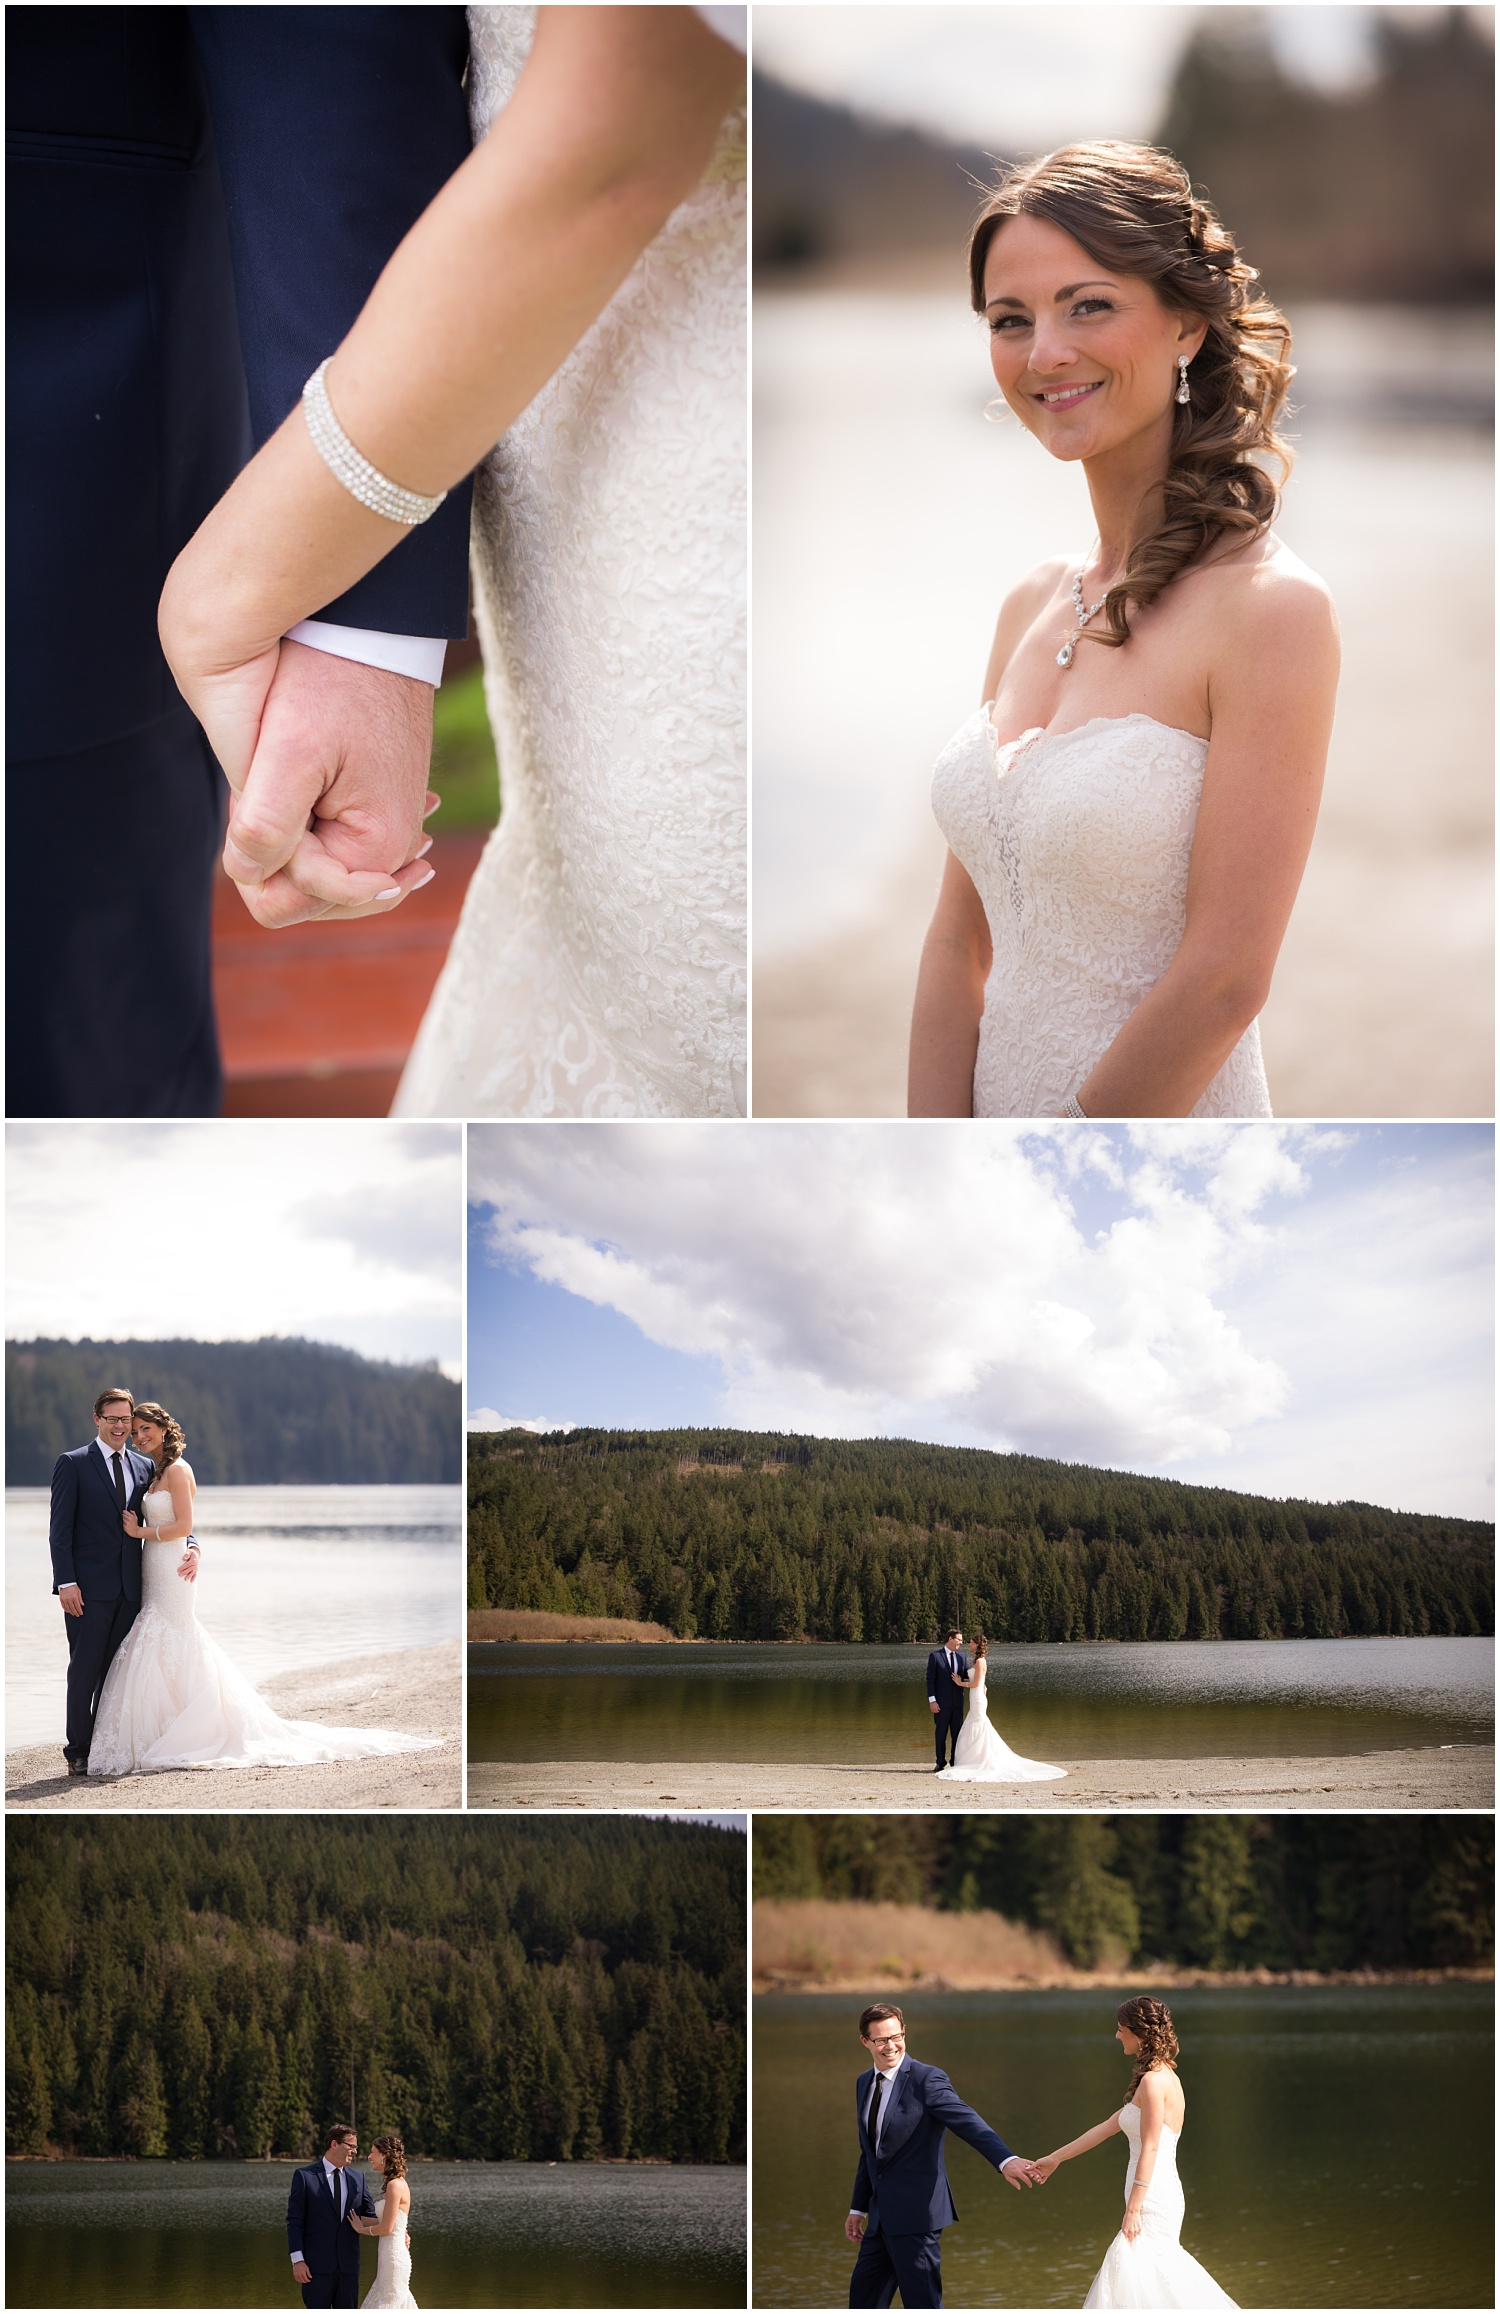 Amazing Day Photography - Mission Wedding Photographer - Hayward Lake Bridal Session - Langley Wedding Photographer (8).jpg